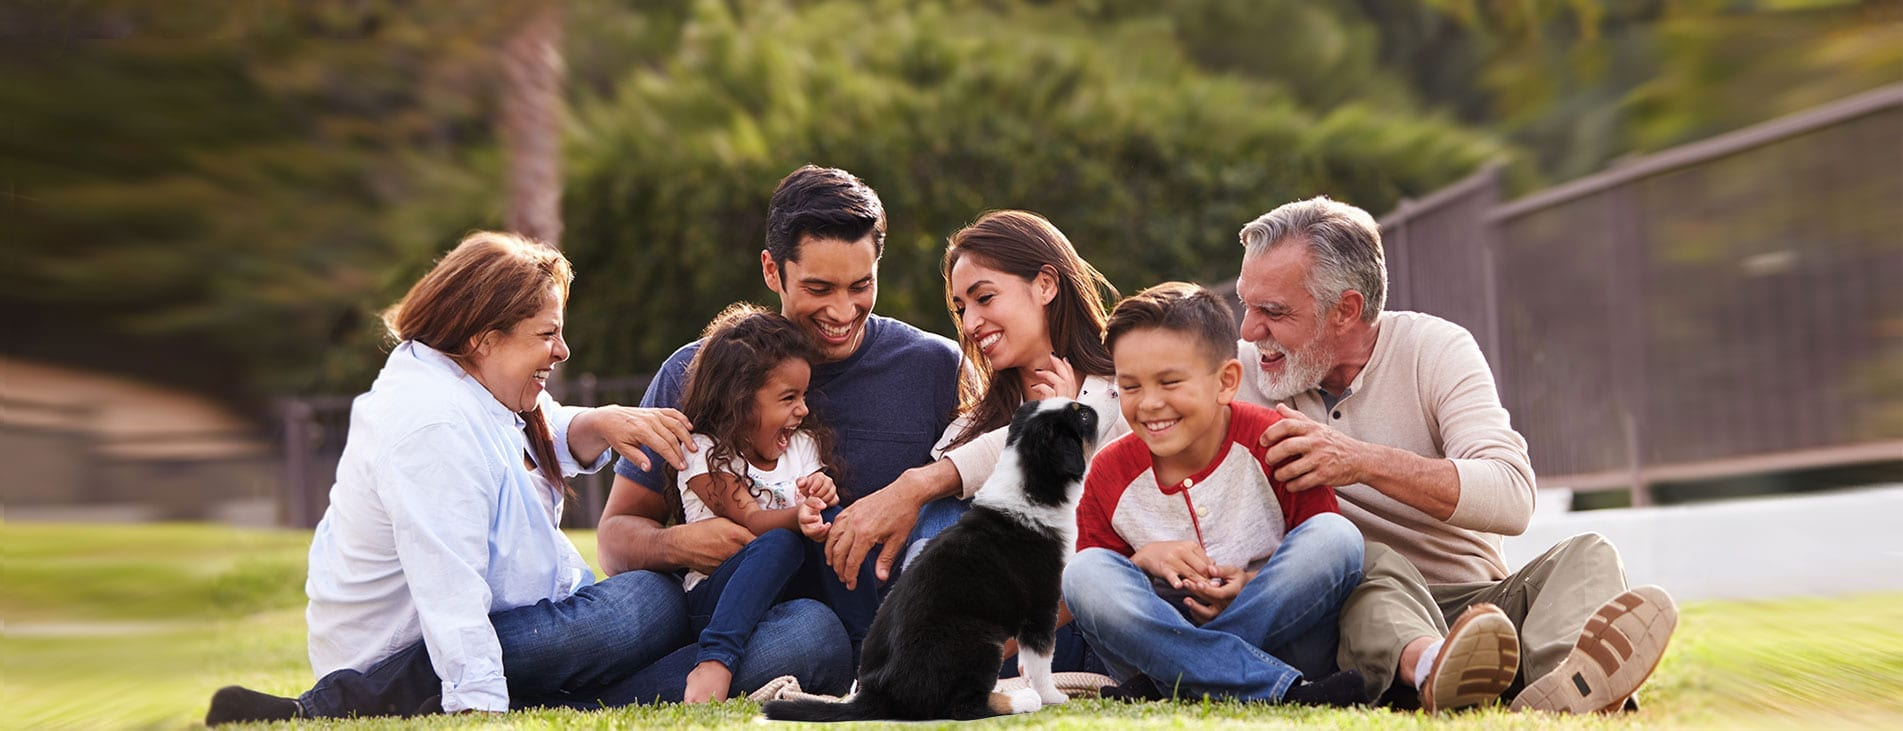 happy diverse family with dog. CBD oil is for everyone